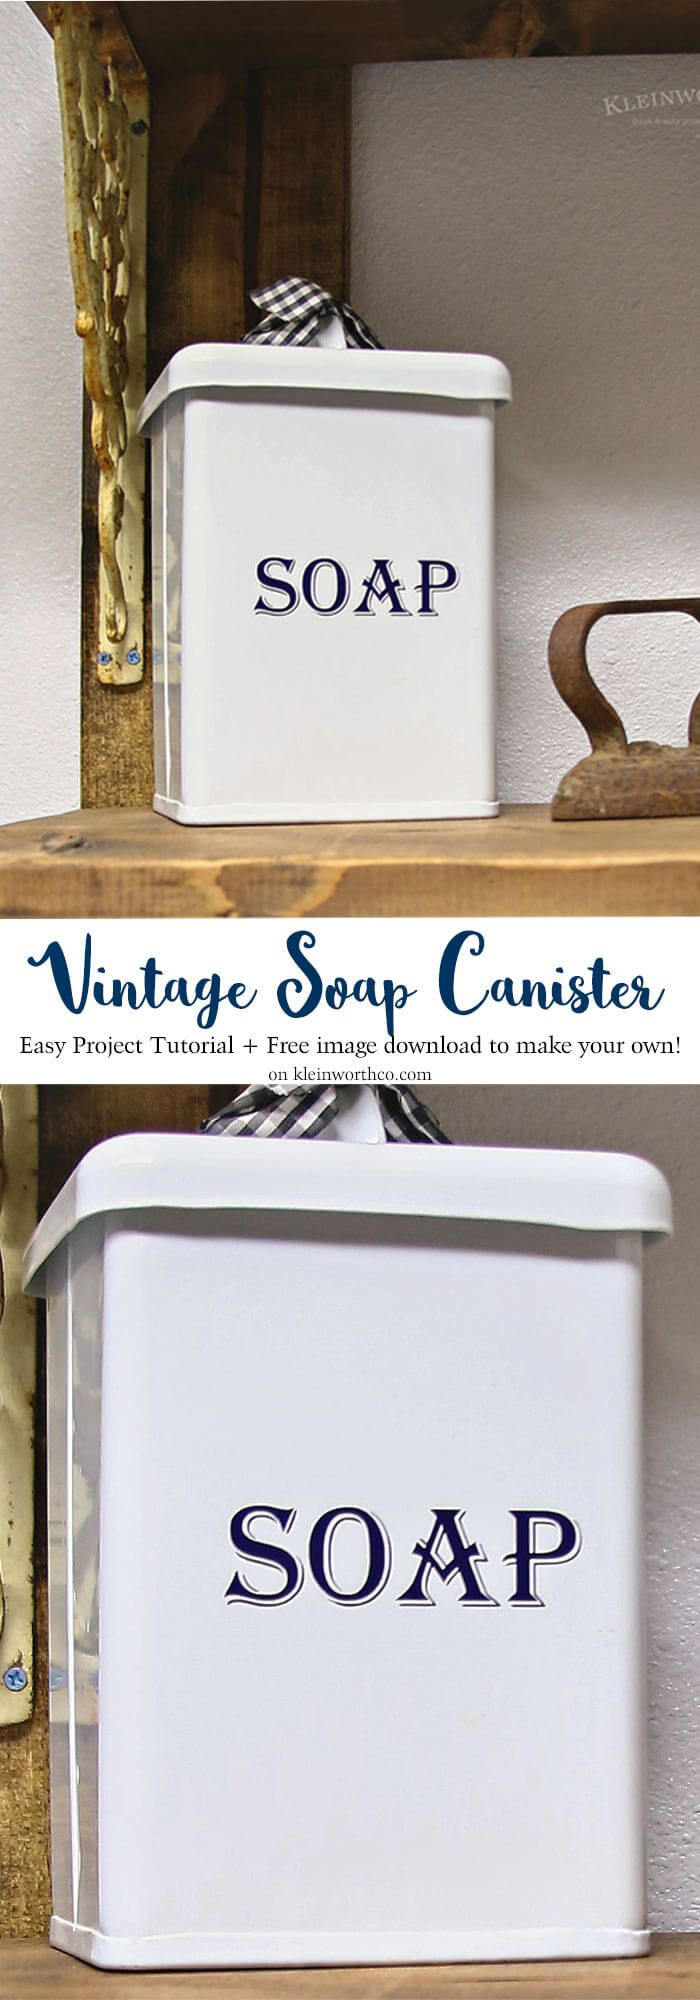 Vintage Soap Canister Cricut Tutorial that's easy to make. What a great way to decorate your laundry space with fun, vintage inspired storage. AD #cricutmade @officialcricut